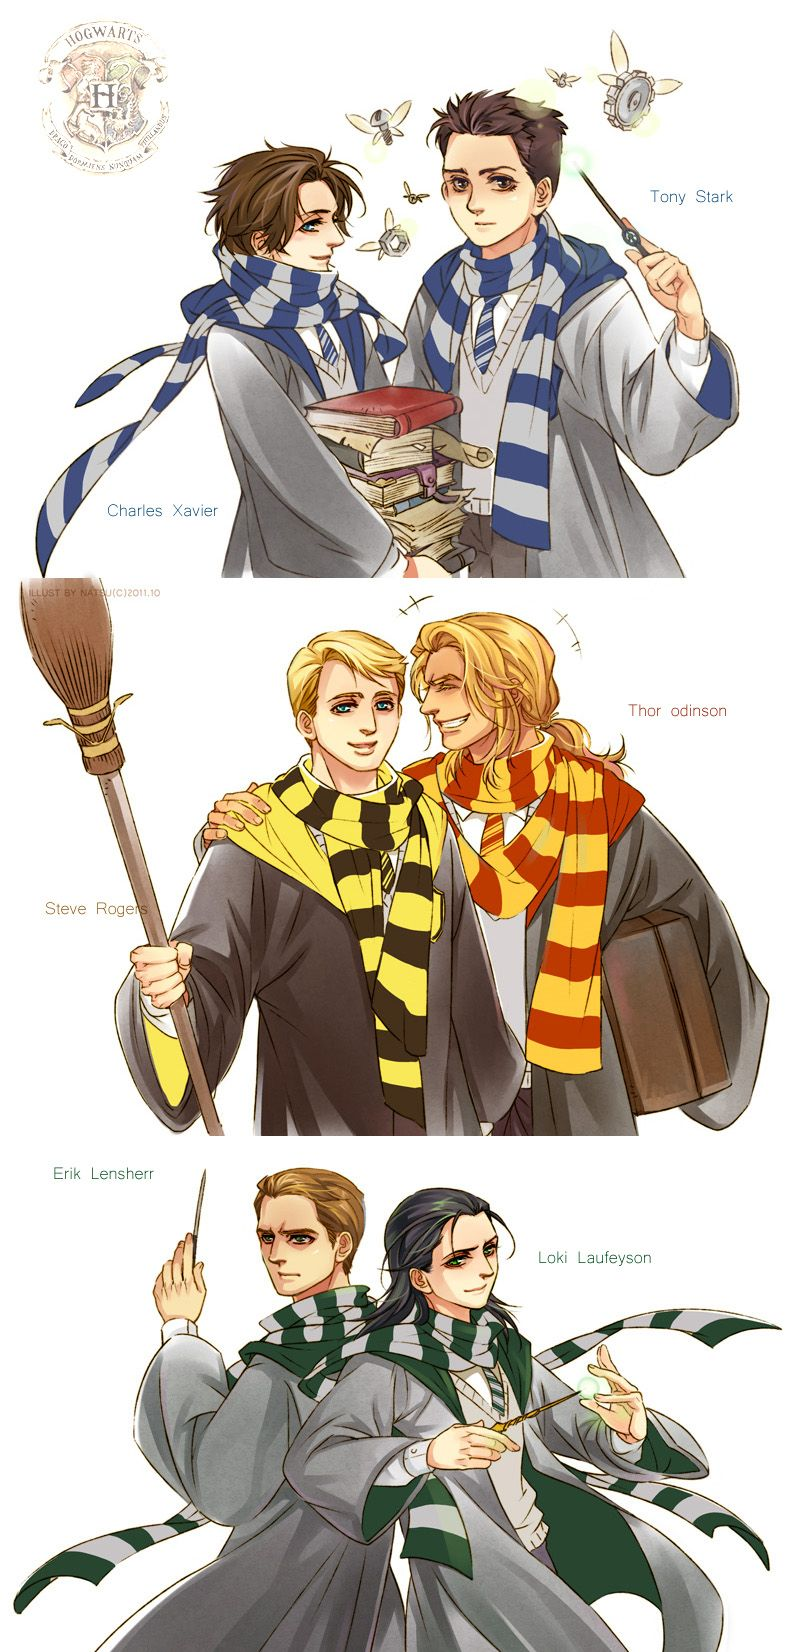 Marvel-crossover HP by Athew deviantart com | Avenger